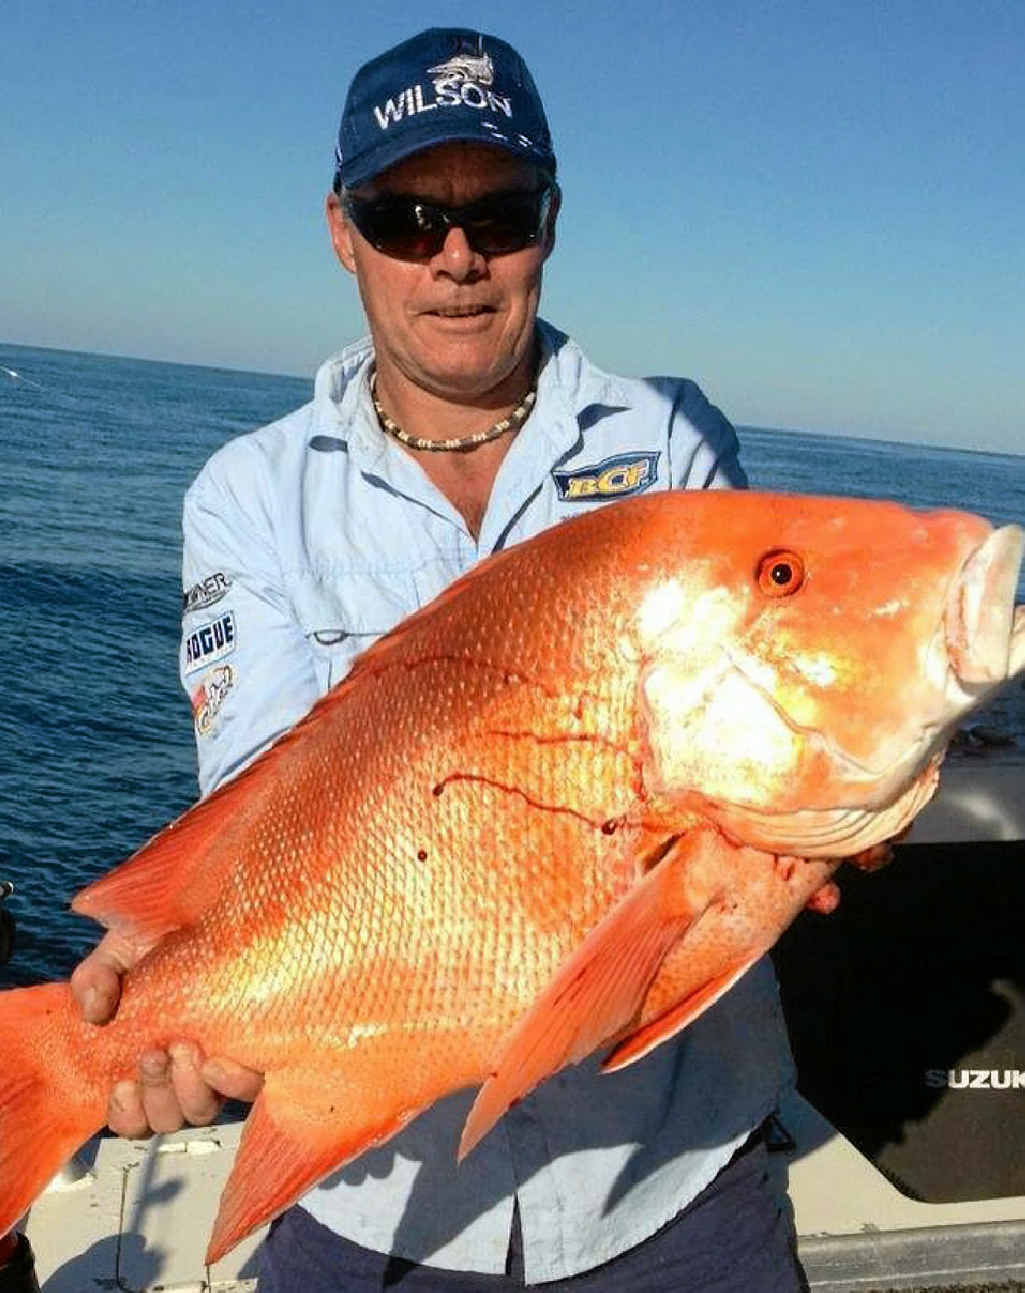 Barry Homeyard with a solid red caught recently.